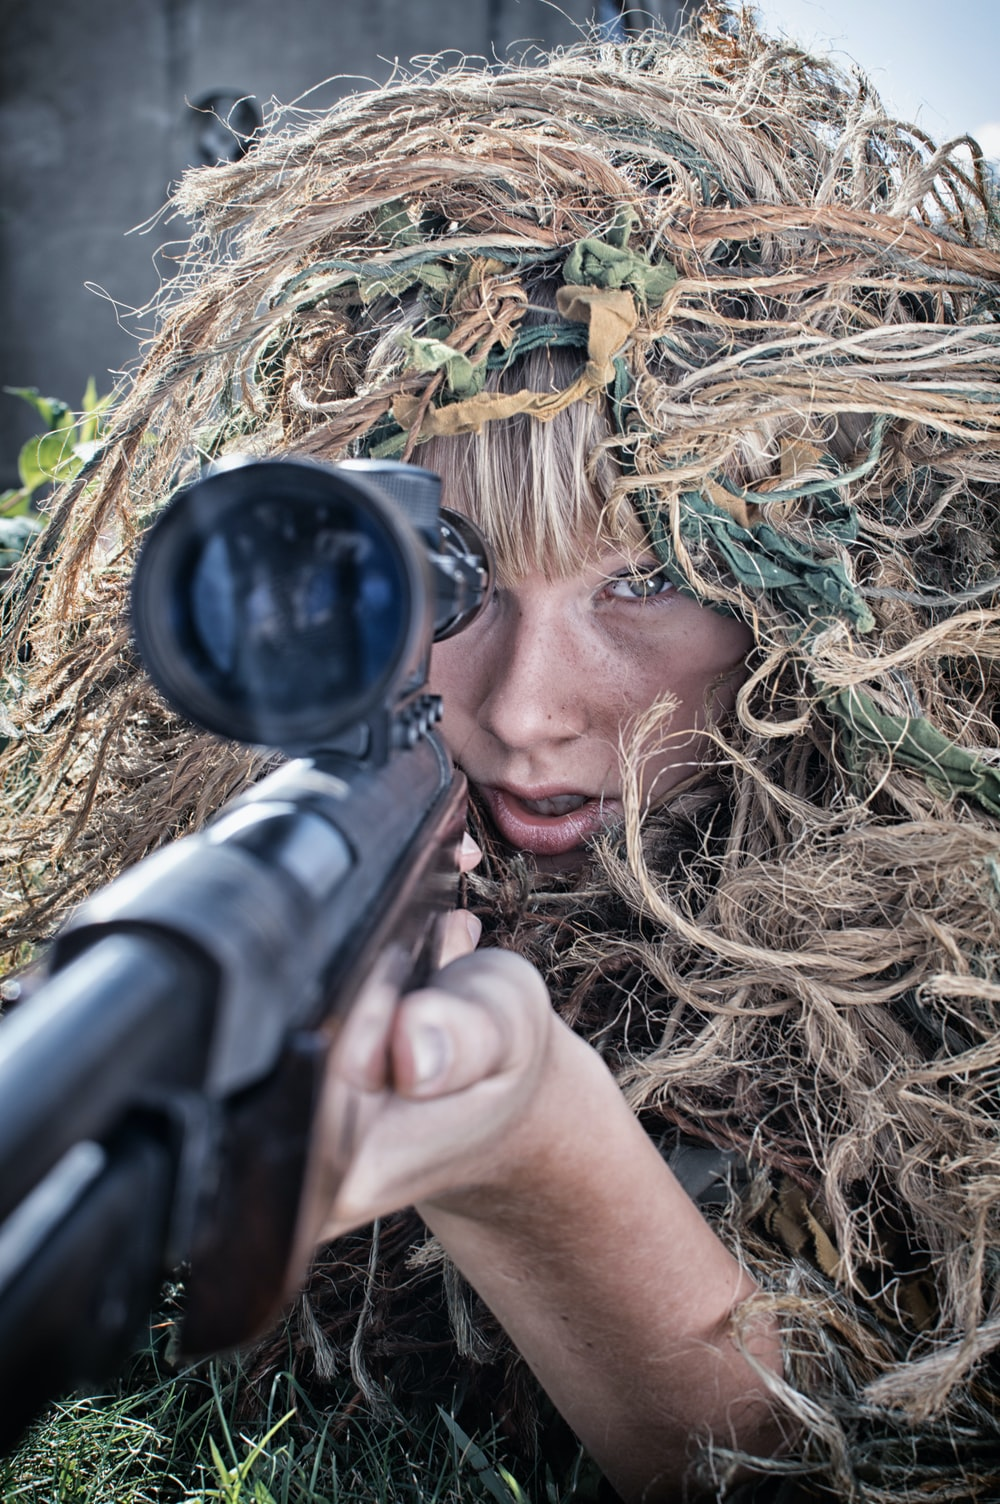 woman wearing gillie suit holding sniper rifle